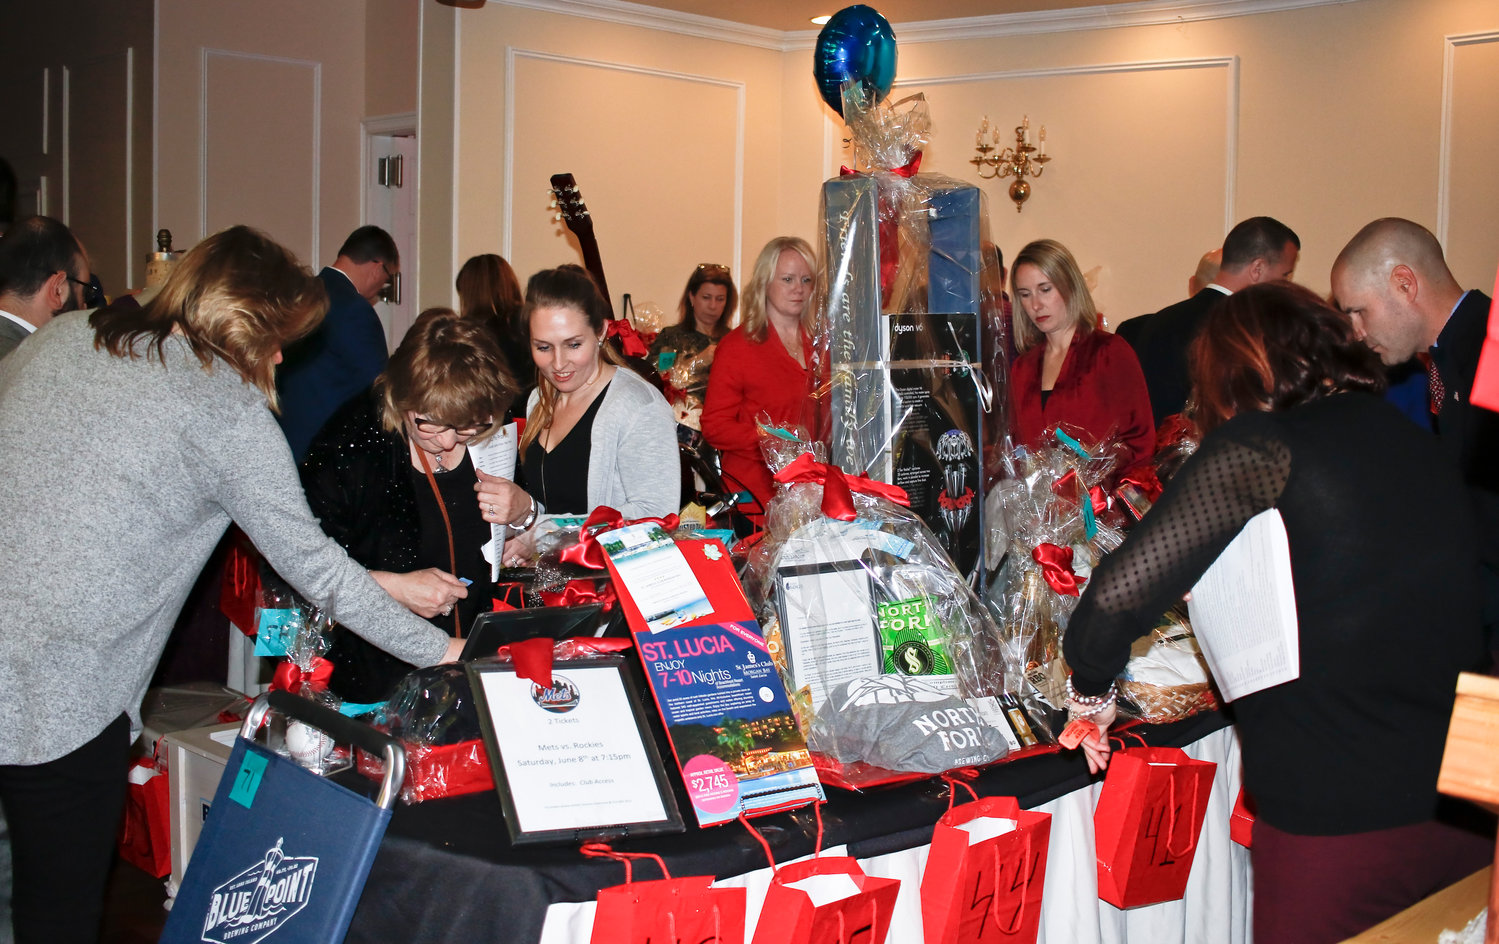 Guests browsed the grand prize raffles, which included cruises, sports packages and a guitar.